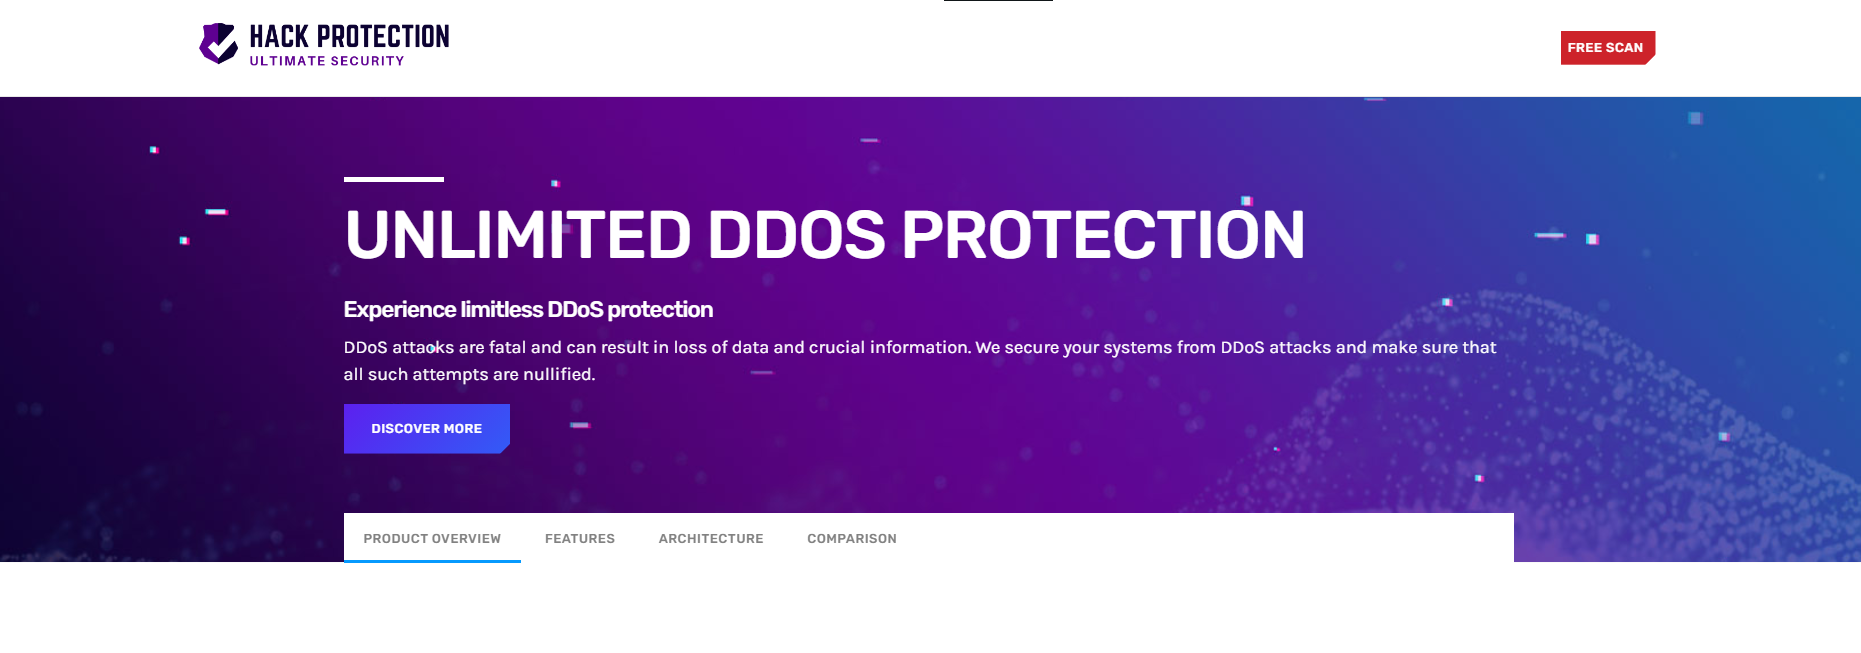 DDoS Protection Hack Protection